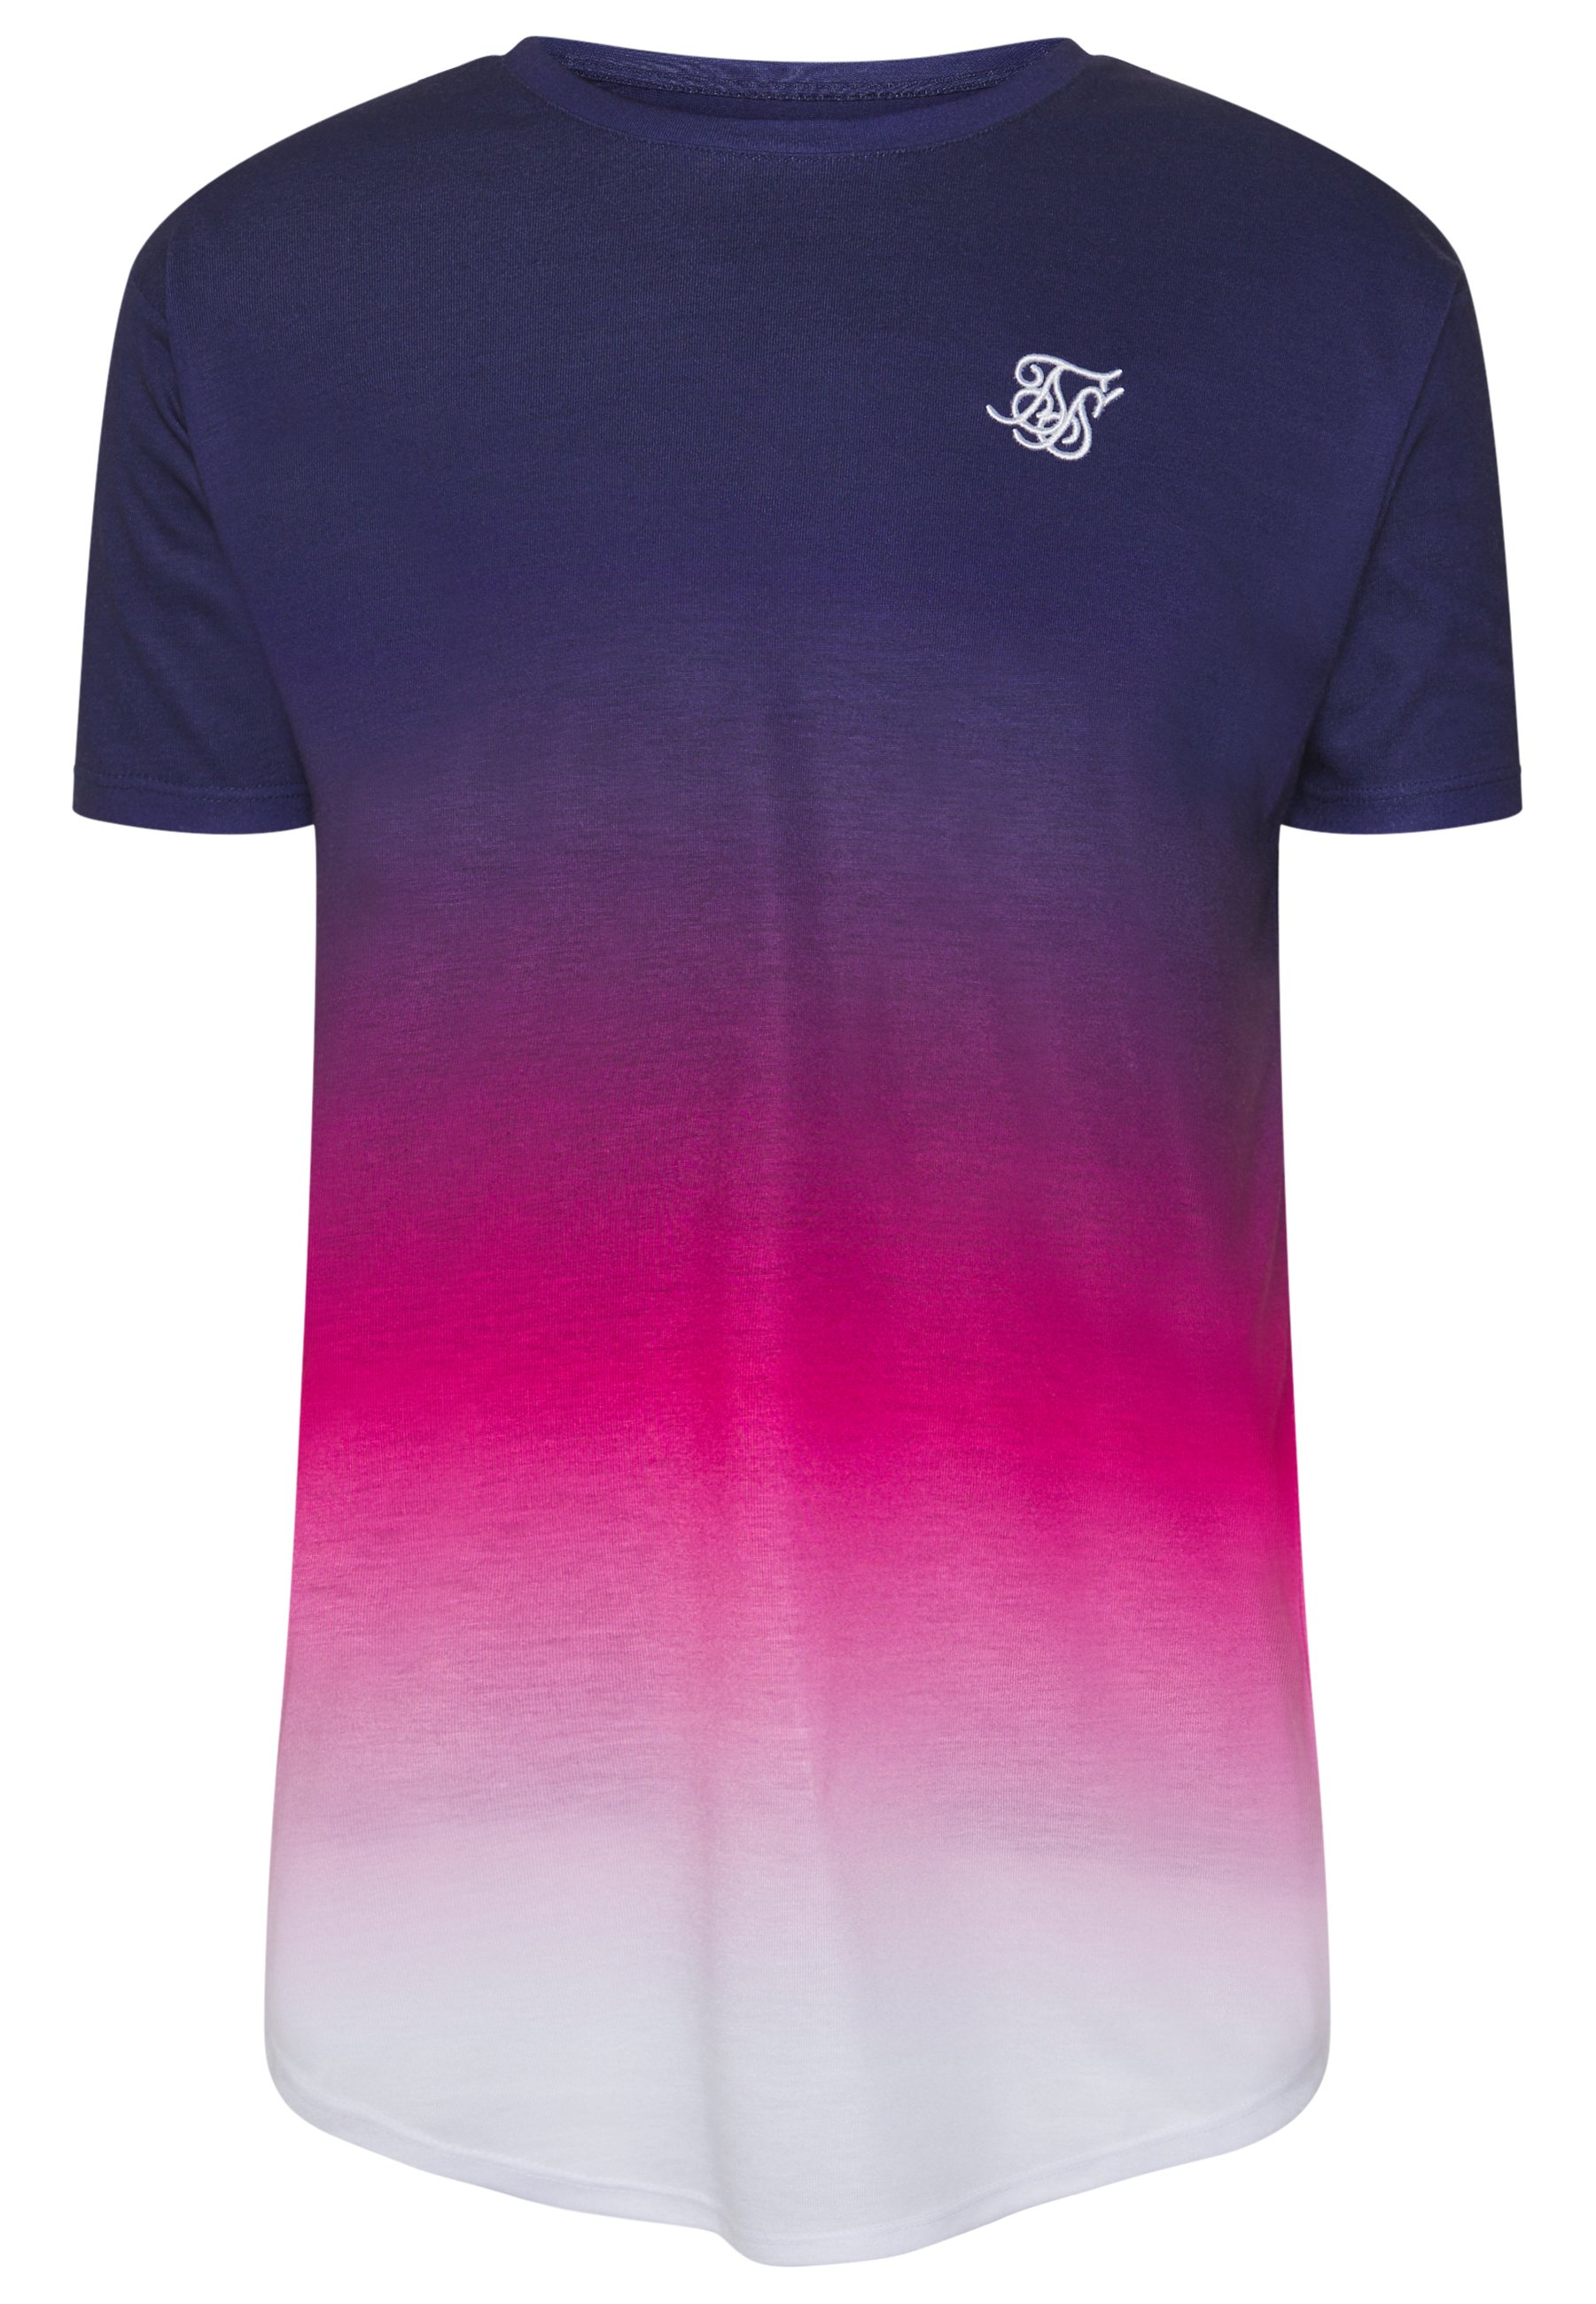 Siksilk Triple Fade Tee - T-shirt Med Print Navy/teal/blue